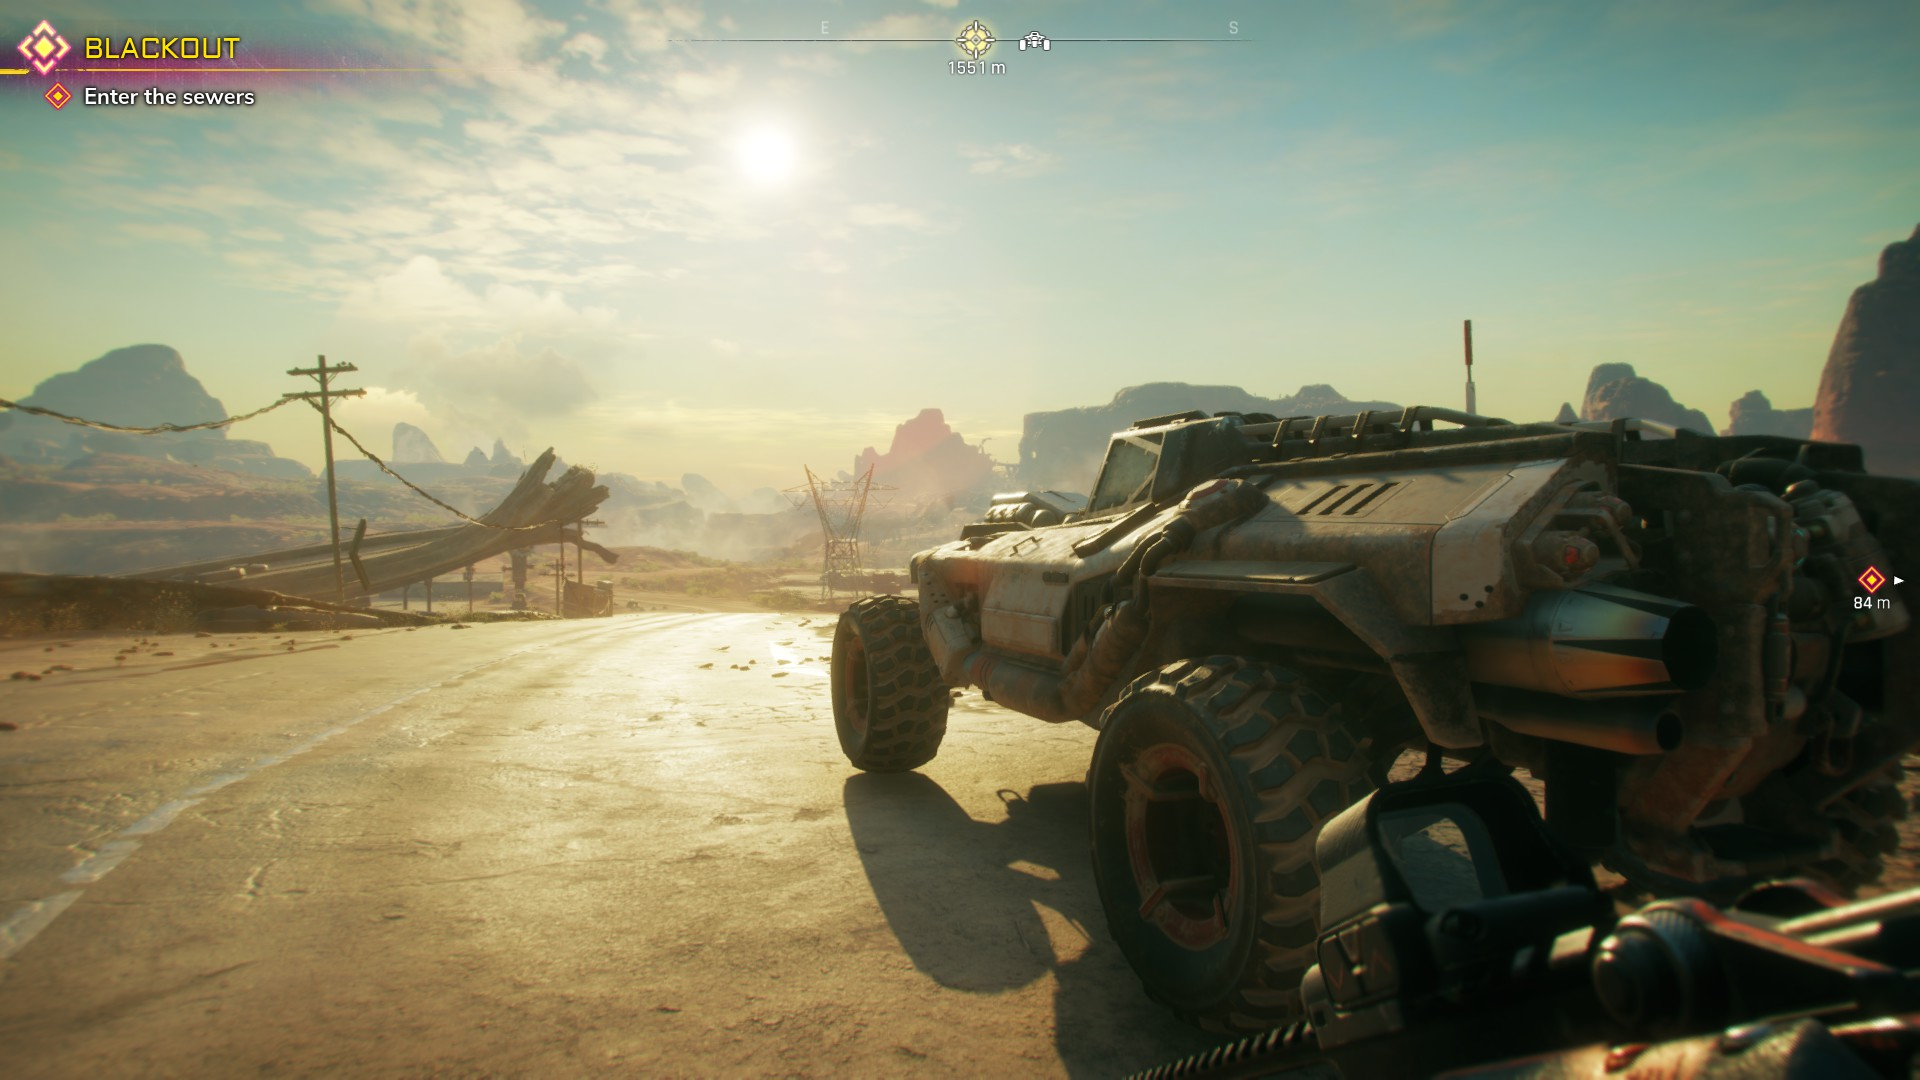 Rage 2 graphics performance: How to get the best settings on